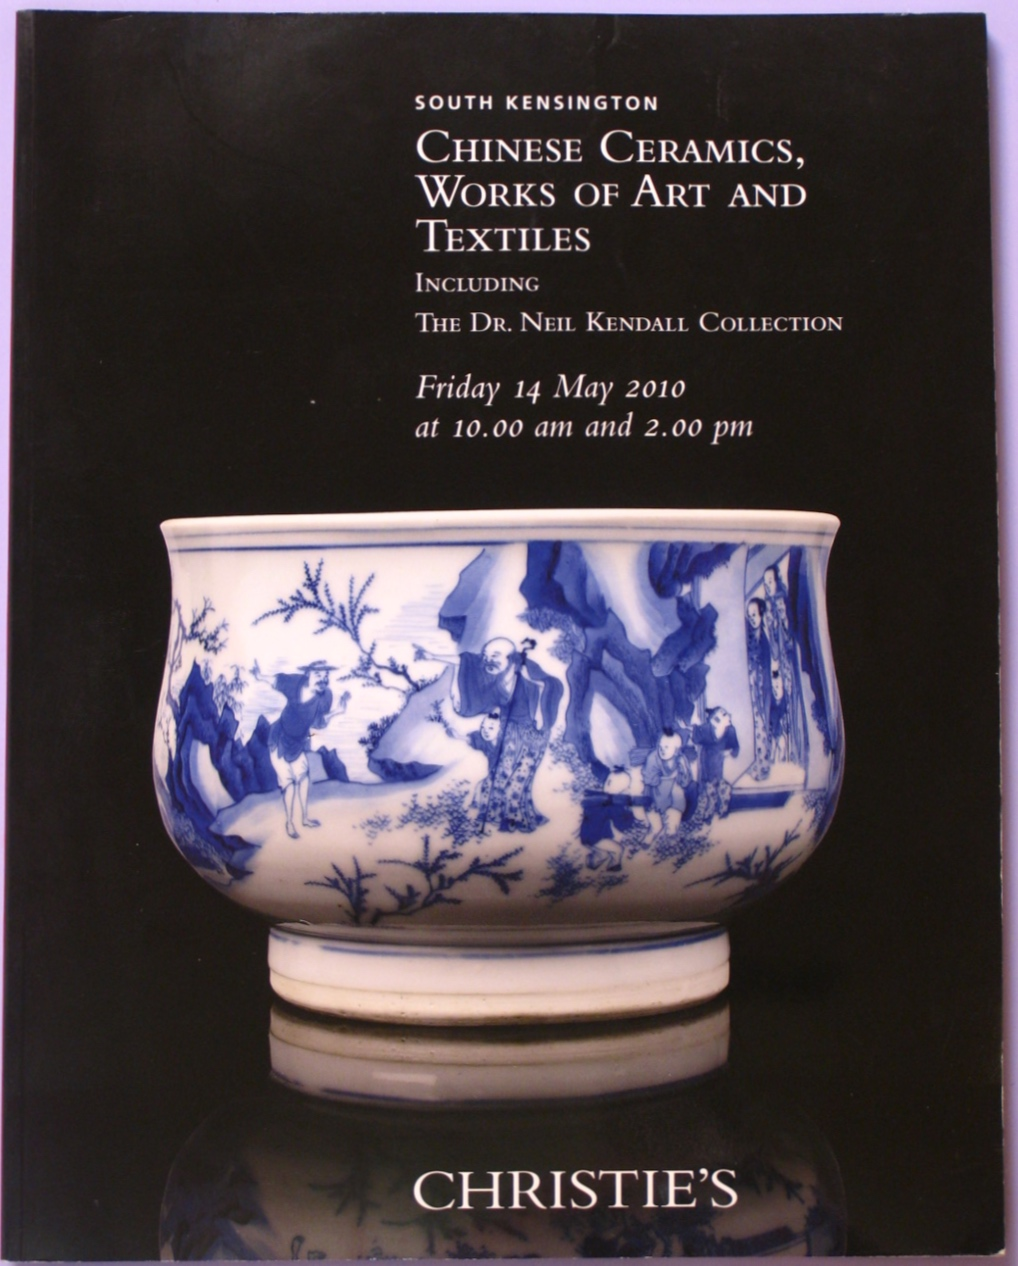 CSK20100514: Bookshop: [2010] Christie's South Kensington Chinese Ceramics, Works of Art and Textiles